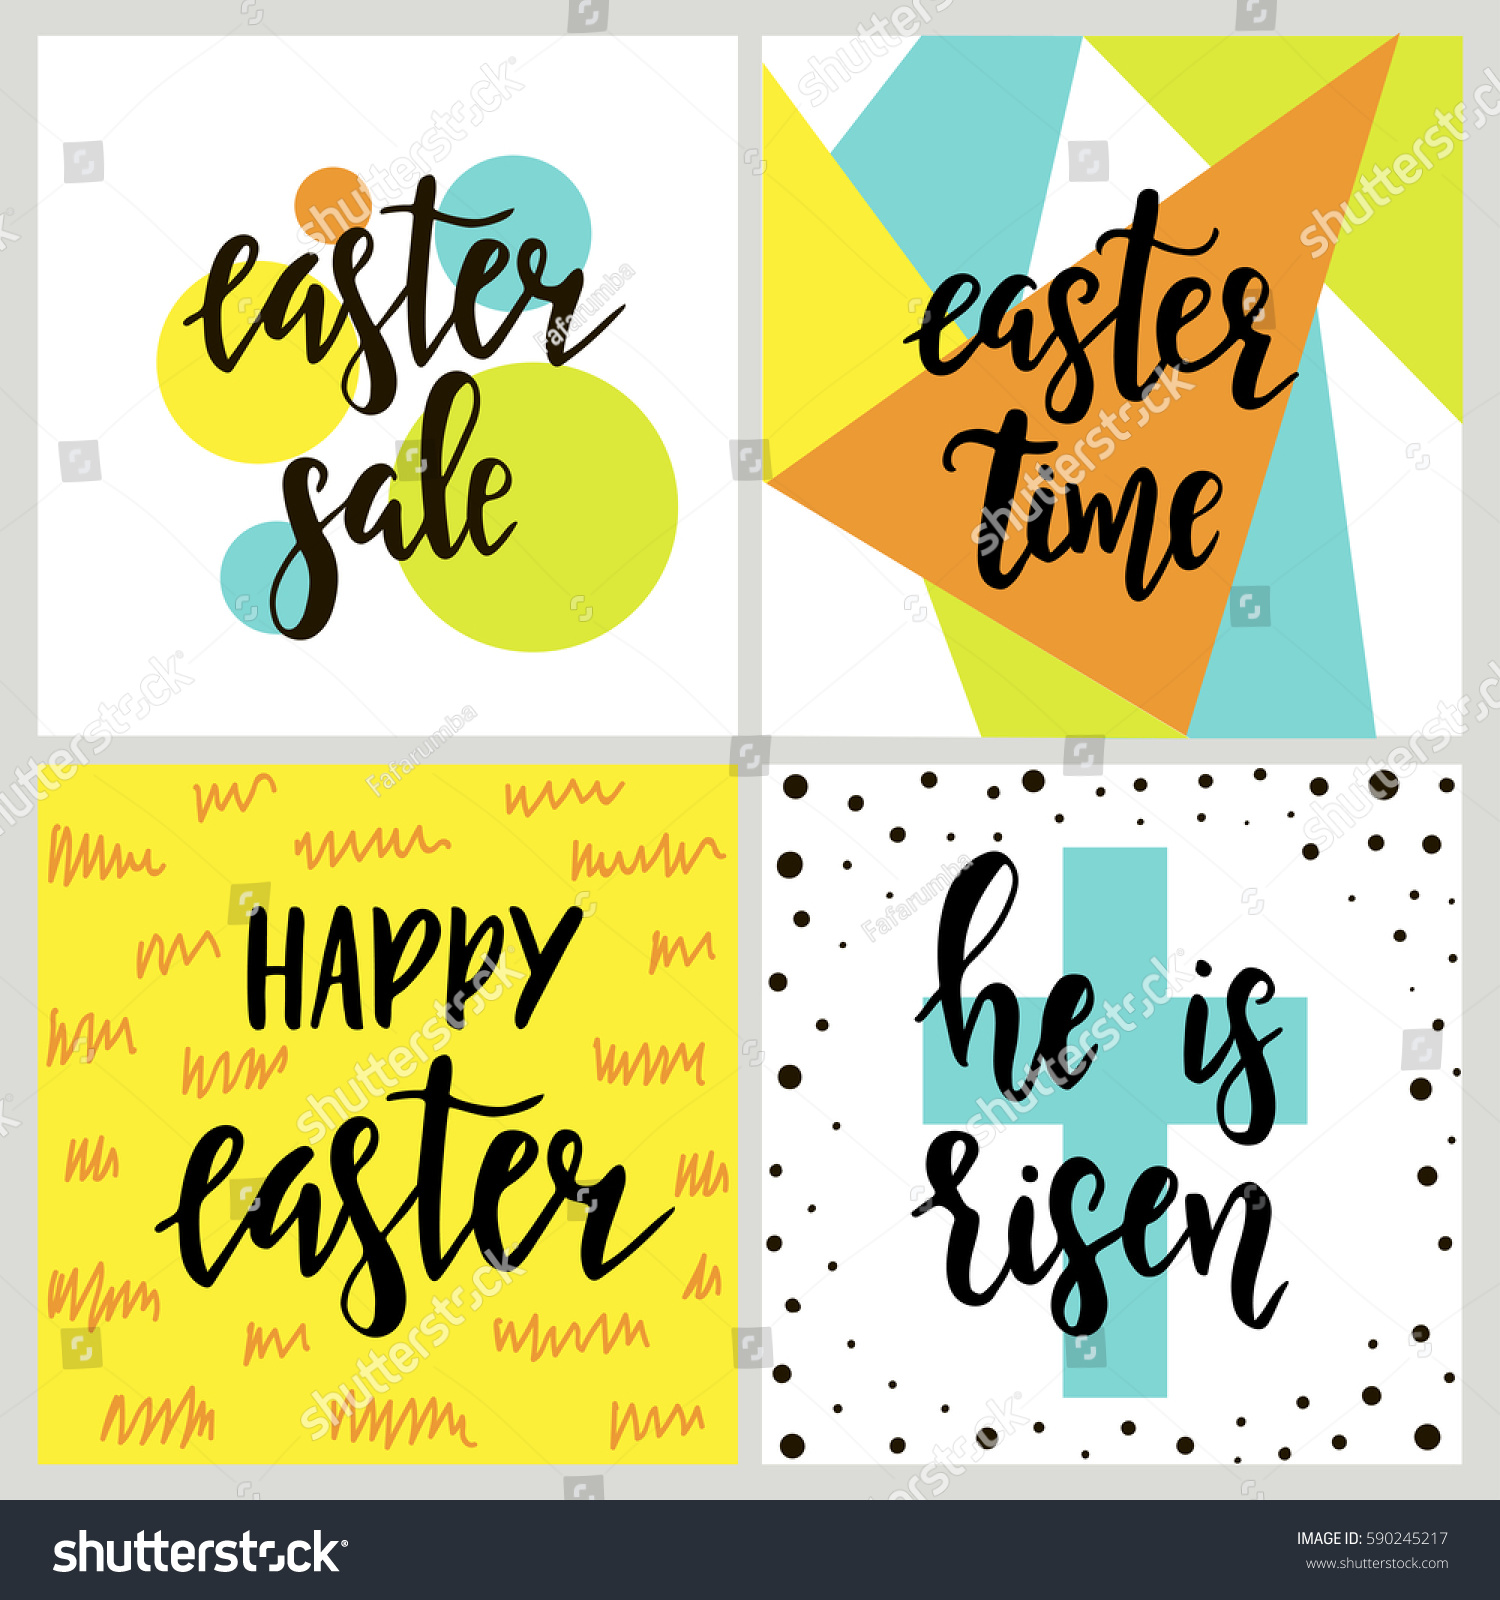 Set happy easter gift cards calligraphy stock vector 590245217 set with happy easter gift cards with calligraphy handwritten lettering hand drawn design elements negle Choice Image